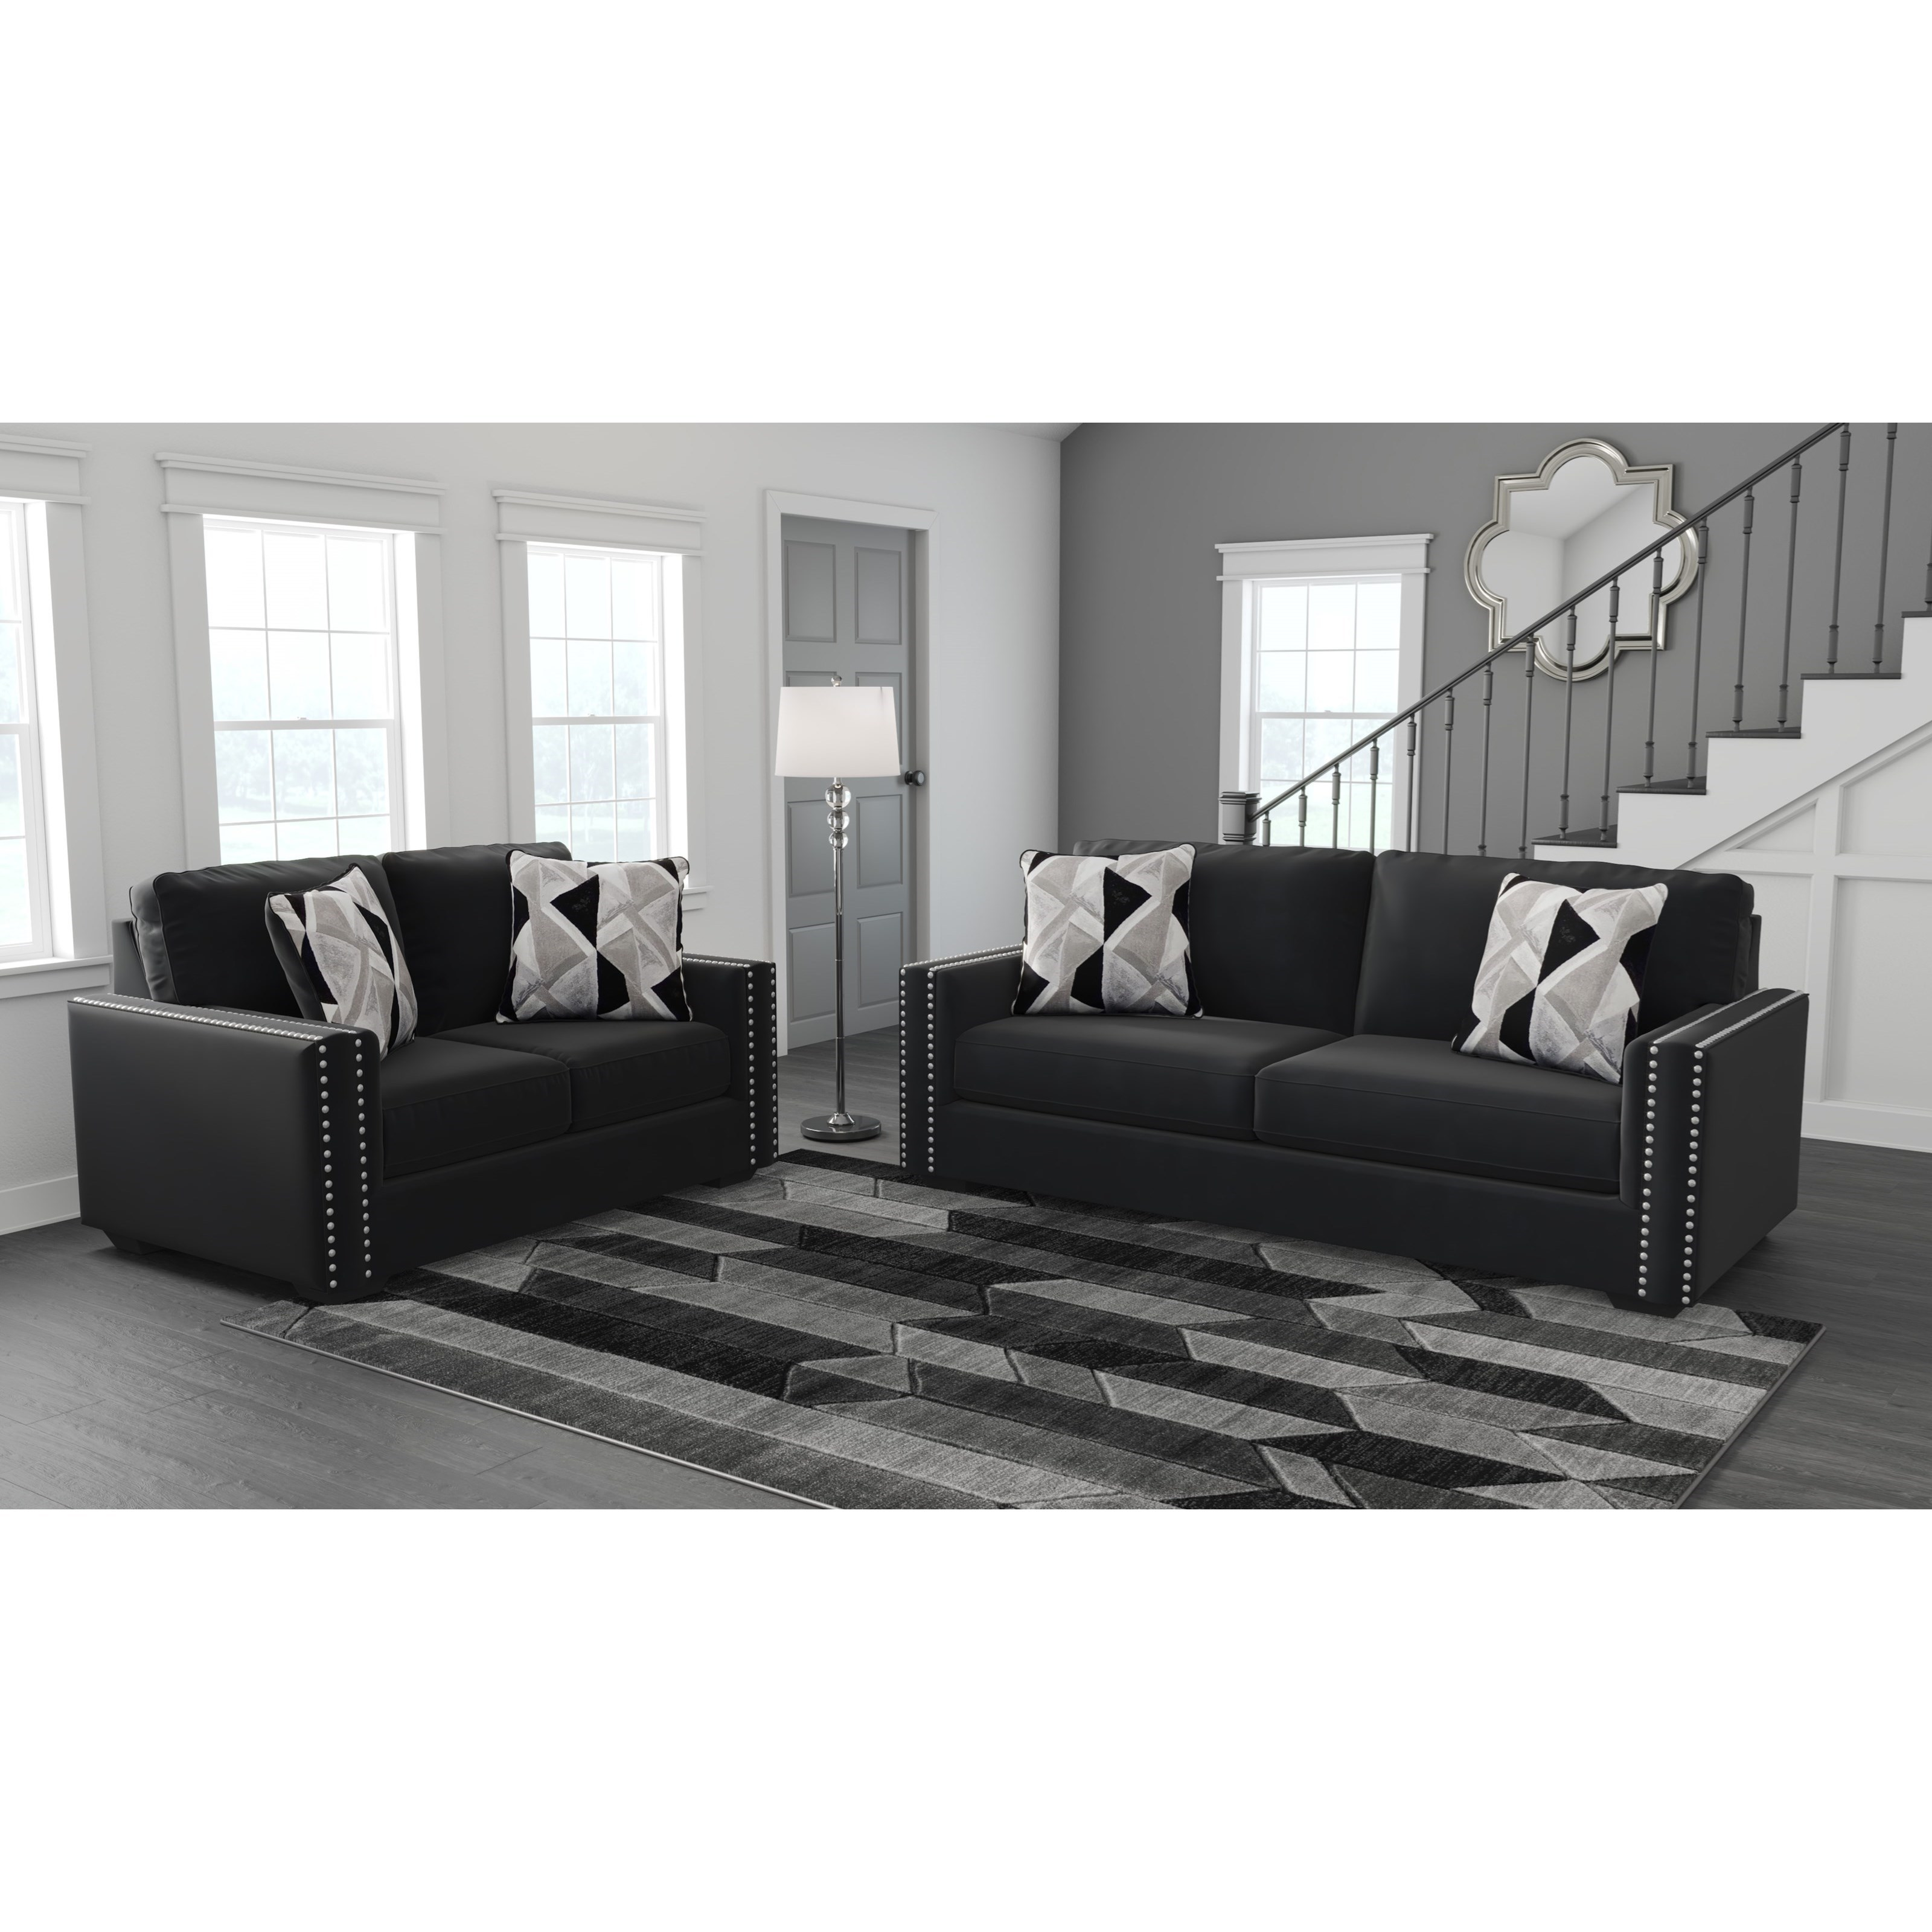 Gleston Living Room Group by Signature Design by Ashley at Sparks HomeStore